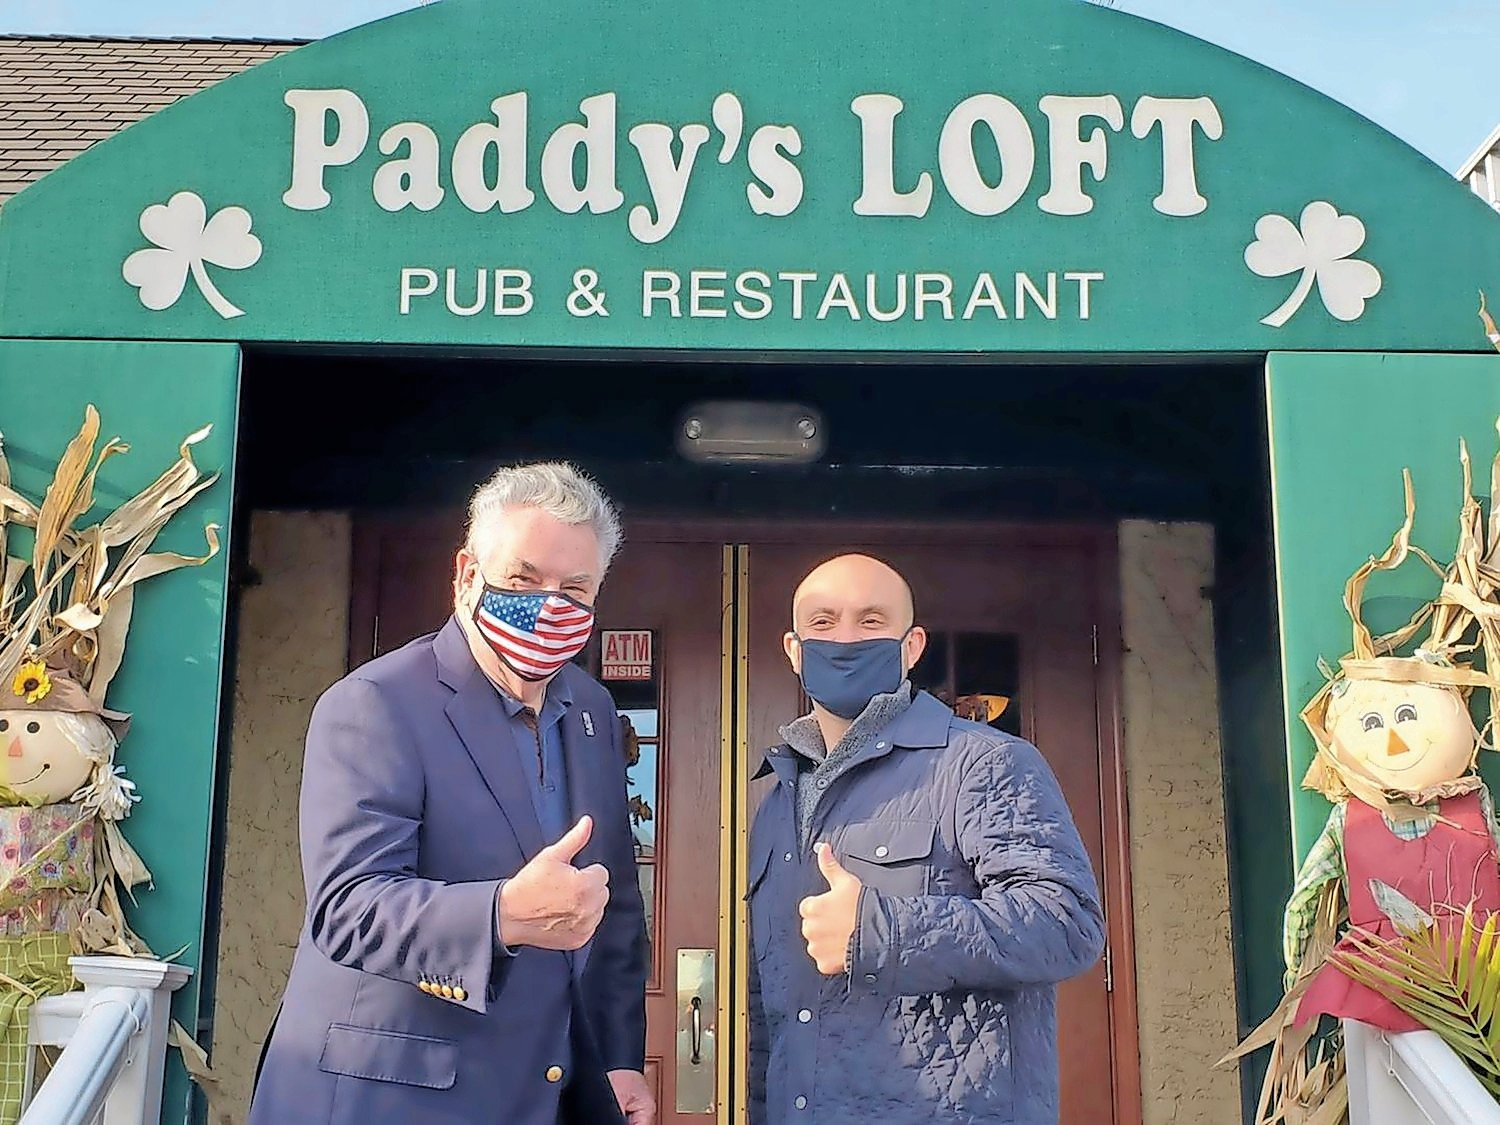 U.S. Rep. Andrew Garbarino recently introduced legislation that would help small business owners create plans to transfer control of their businesses when they leave, retire or die. Garbarino often patronizes local businesses like Paddy's Loft in Massapequa, where he appeared with his predecessor, Peter King.